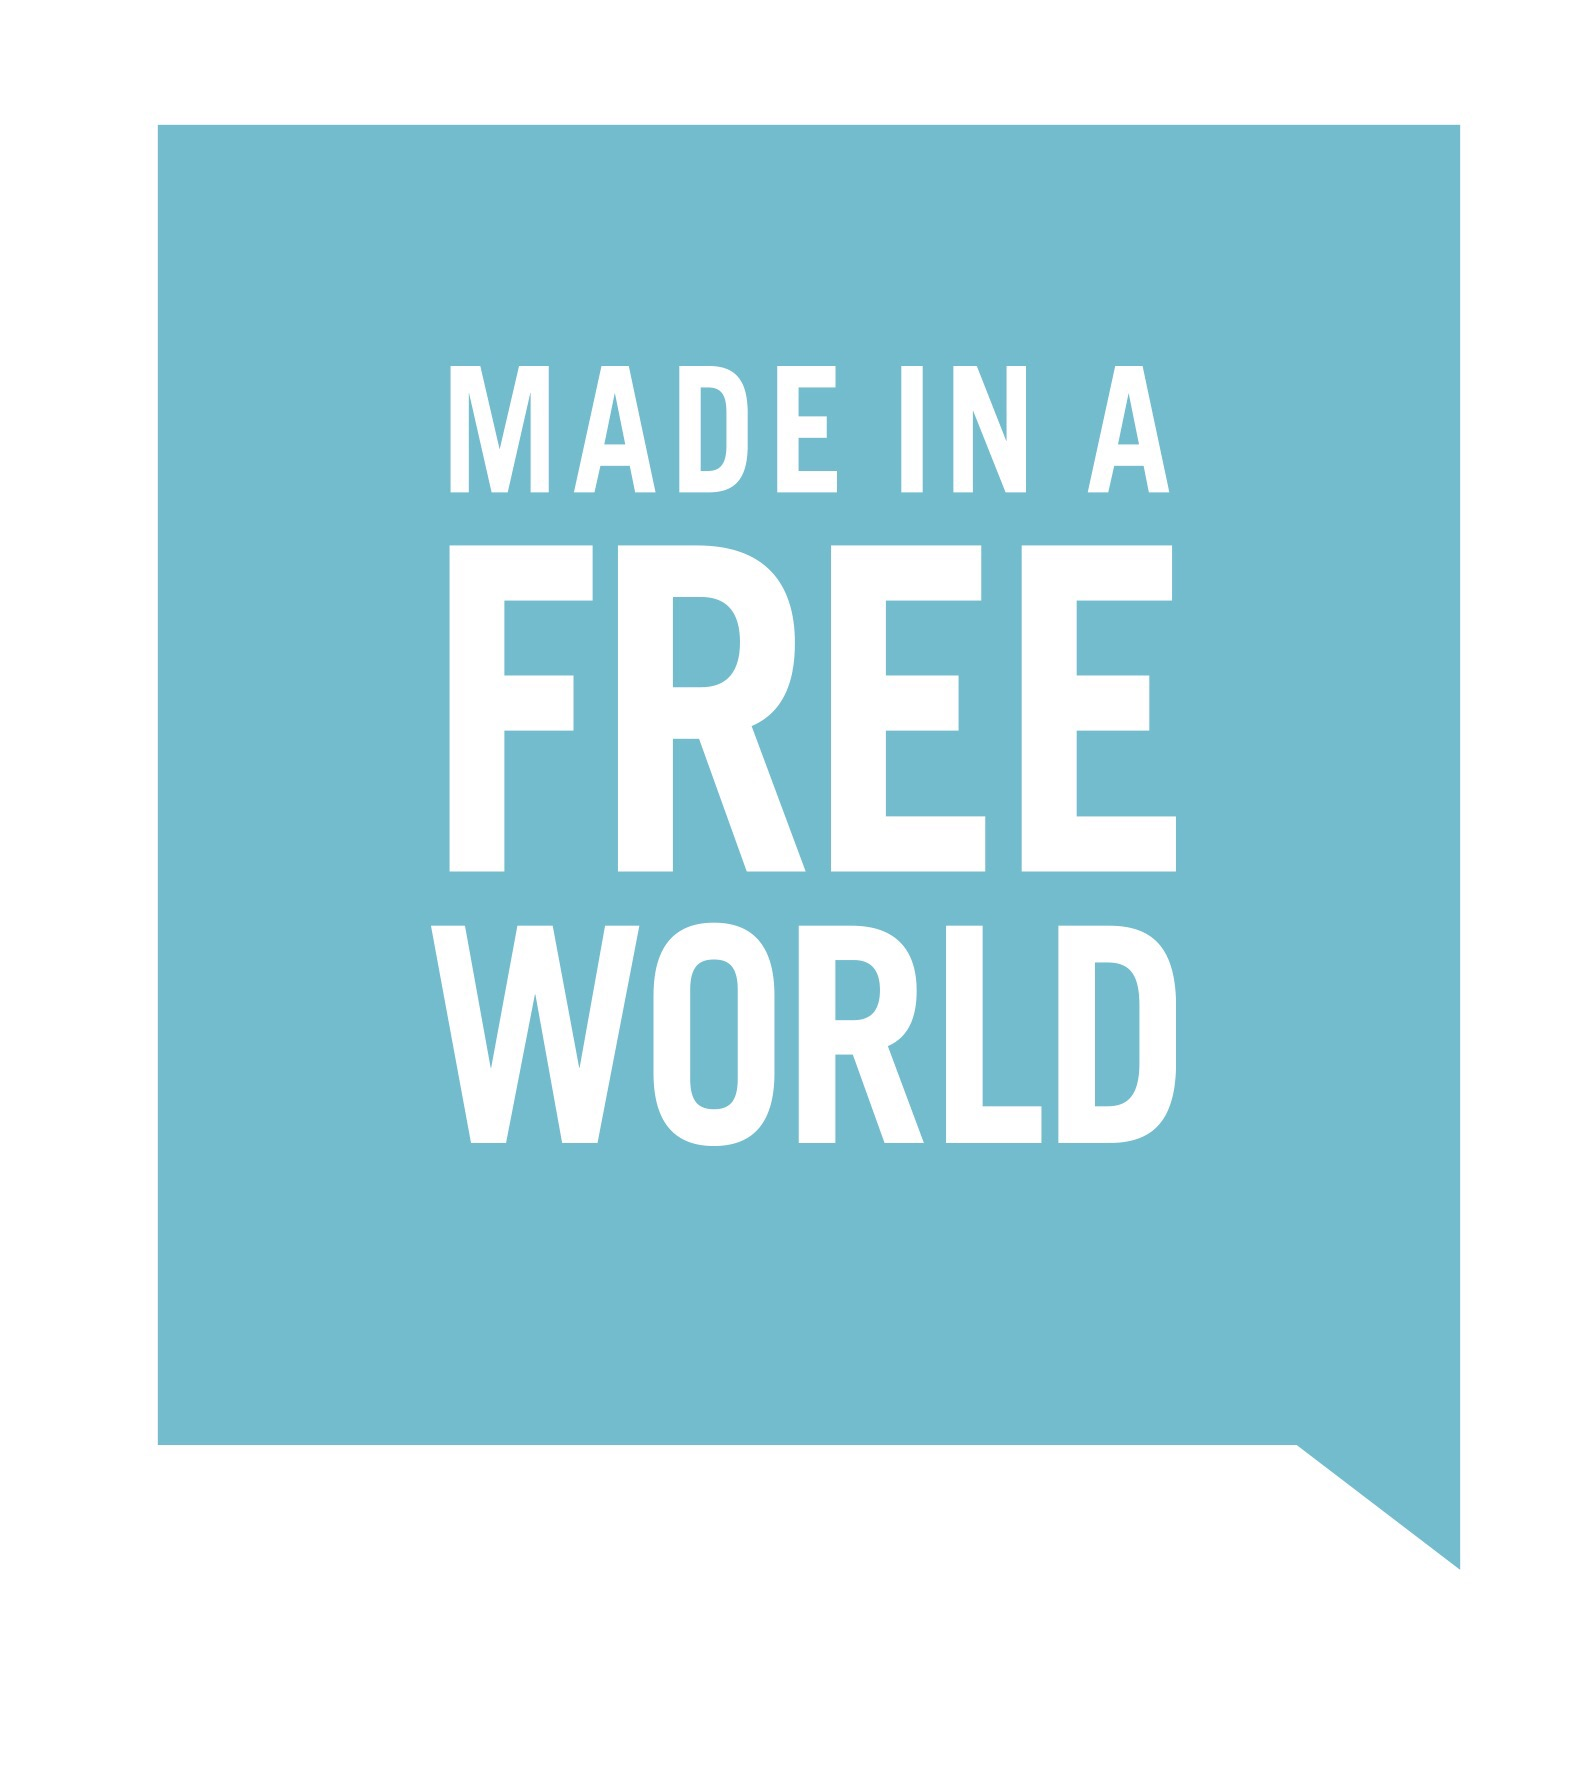 Made in a free world surgery modern slavery